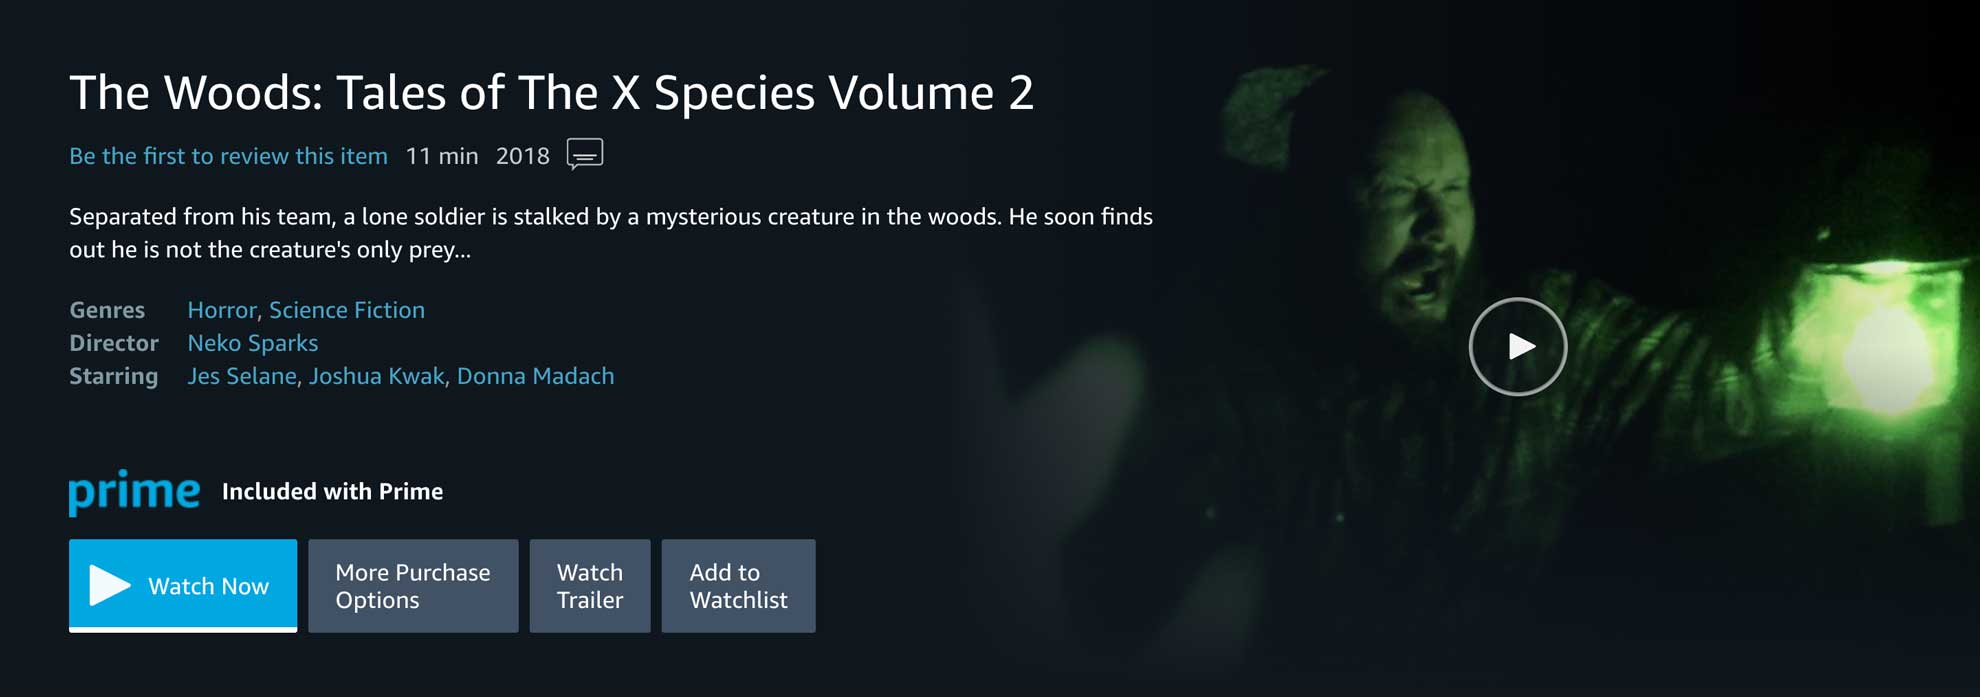 The Woods: Tales of The X Species